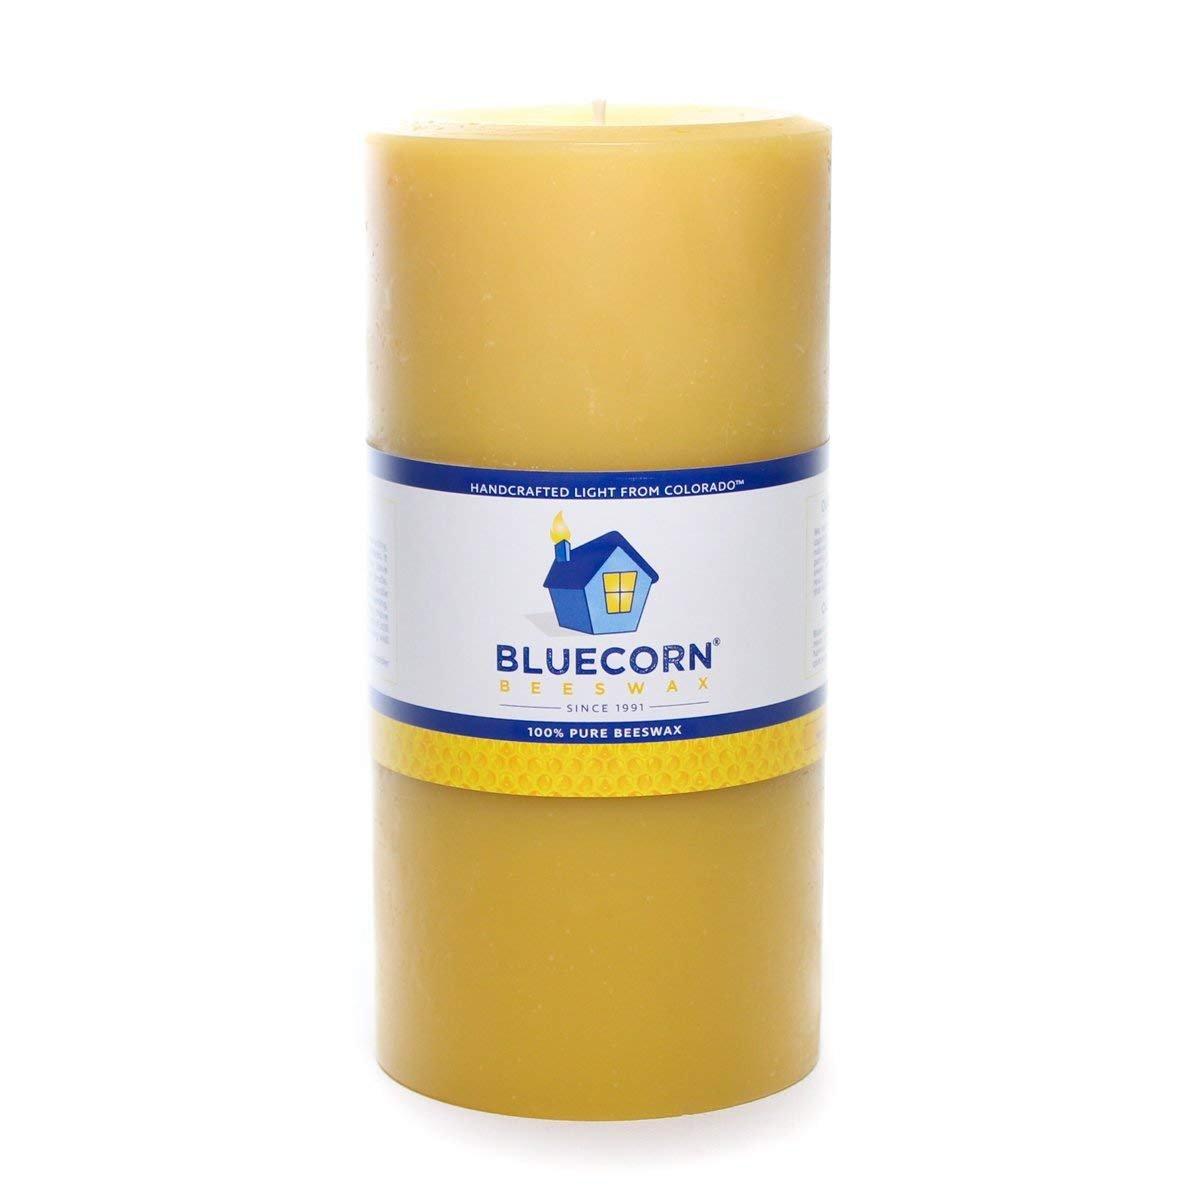 Bluecorn Beeswax 100% Pure Raw Beeswax Pillar: 4''x 8''